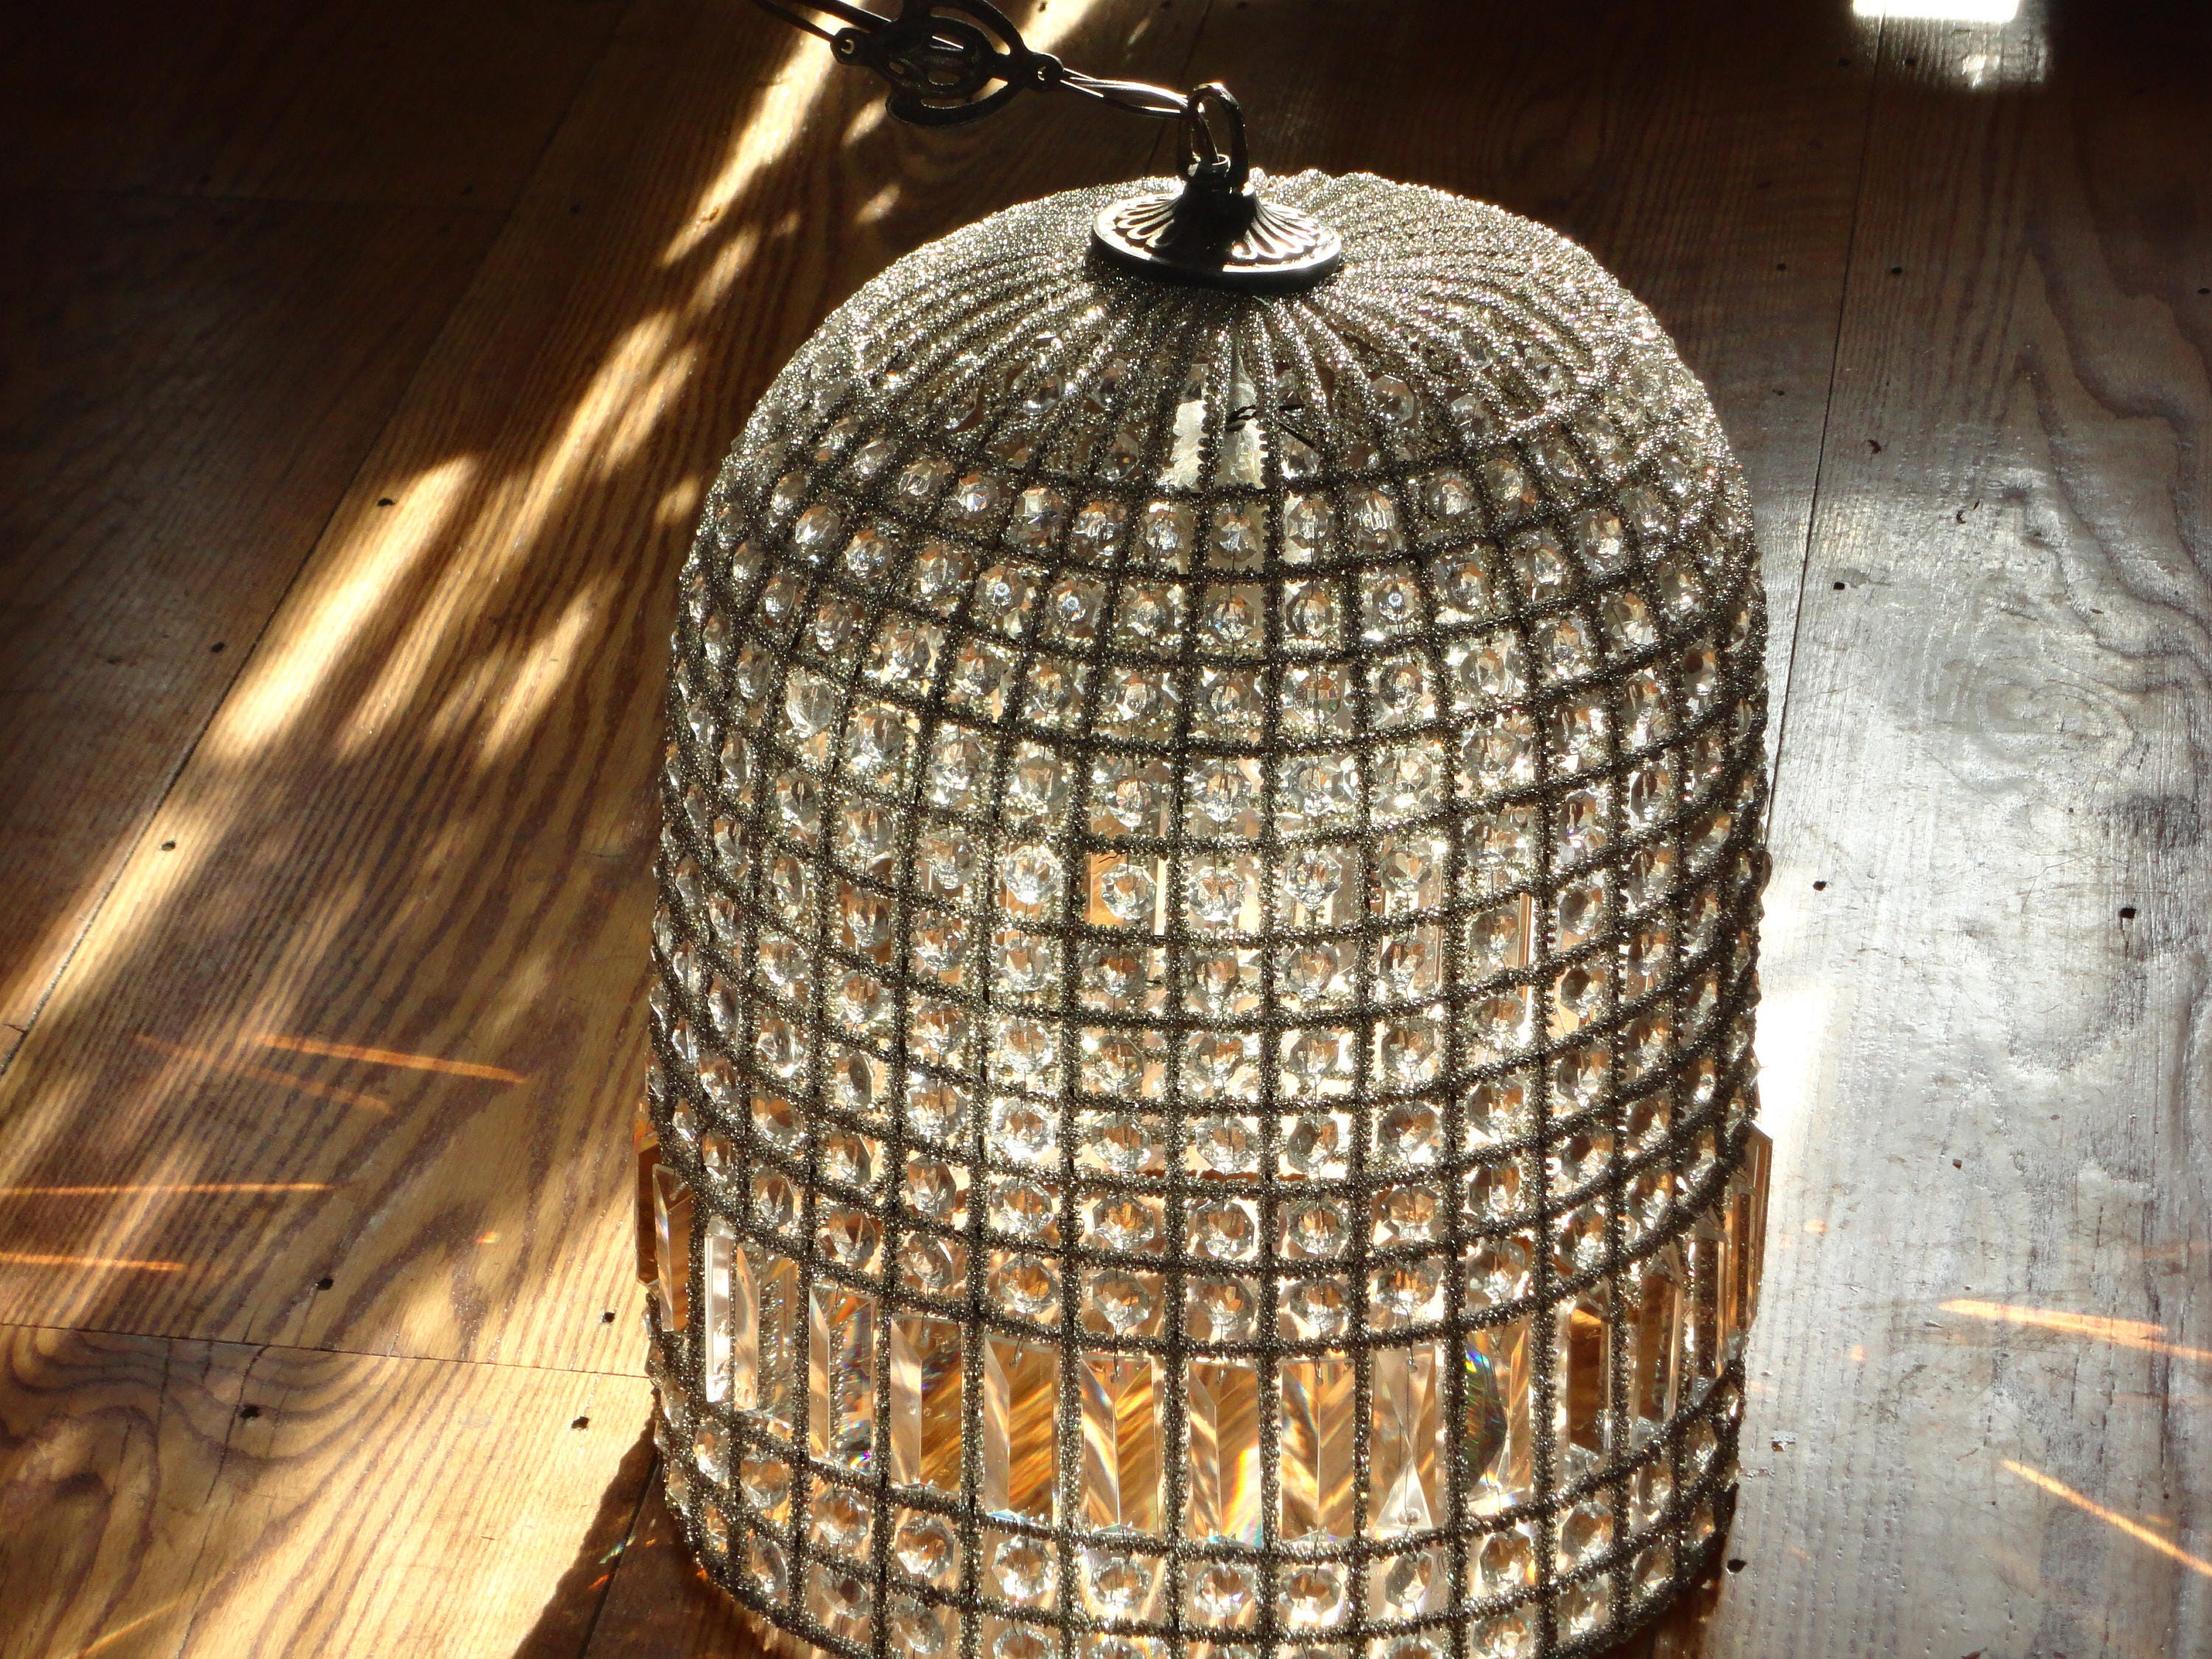 Vintage Beaded Dome Shaped Birdcage Chandelier